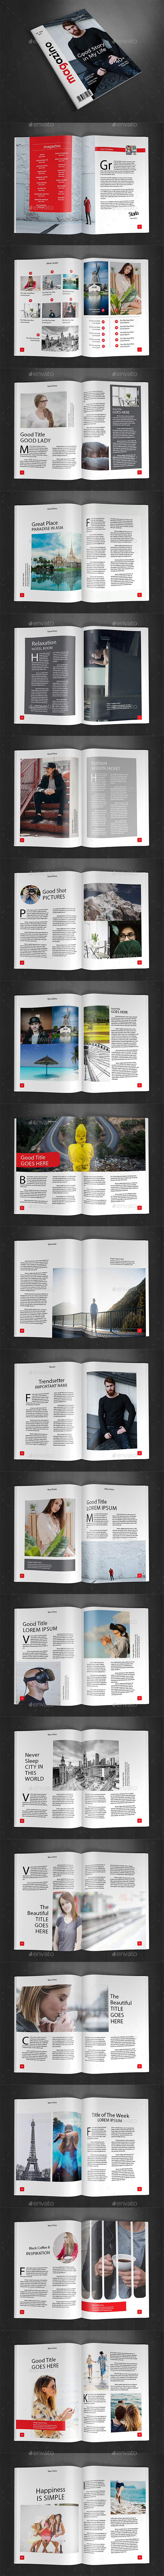 GraphicRiver A4 Magazine Template Vol.28 20368172